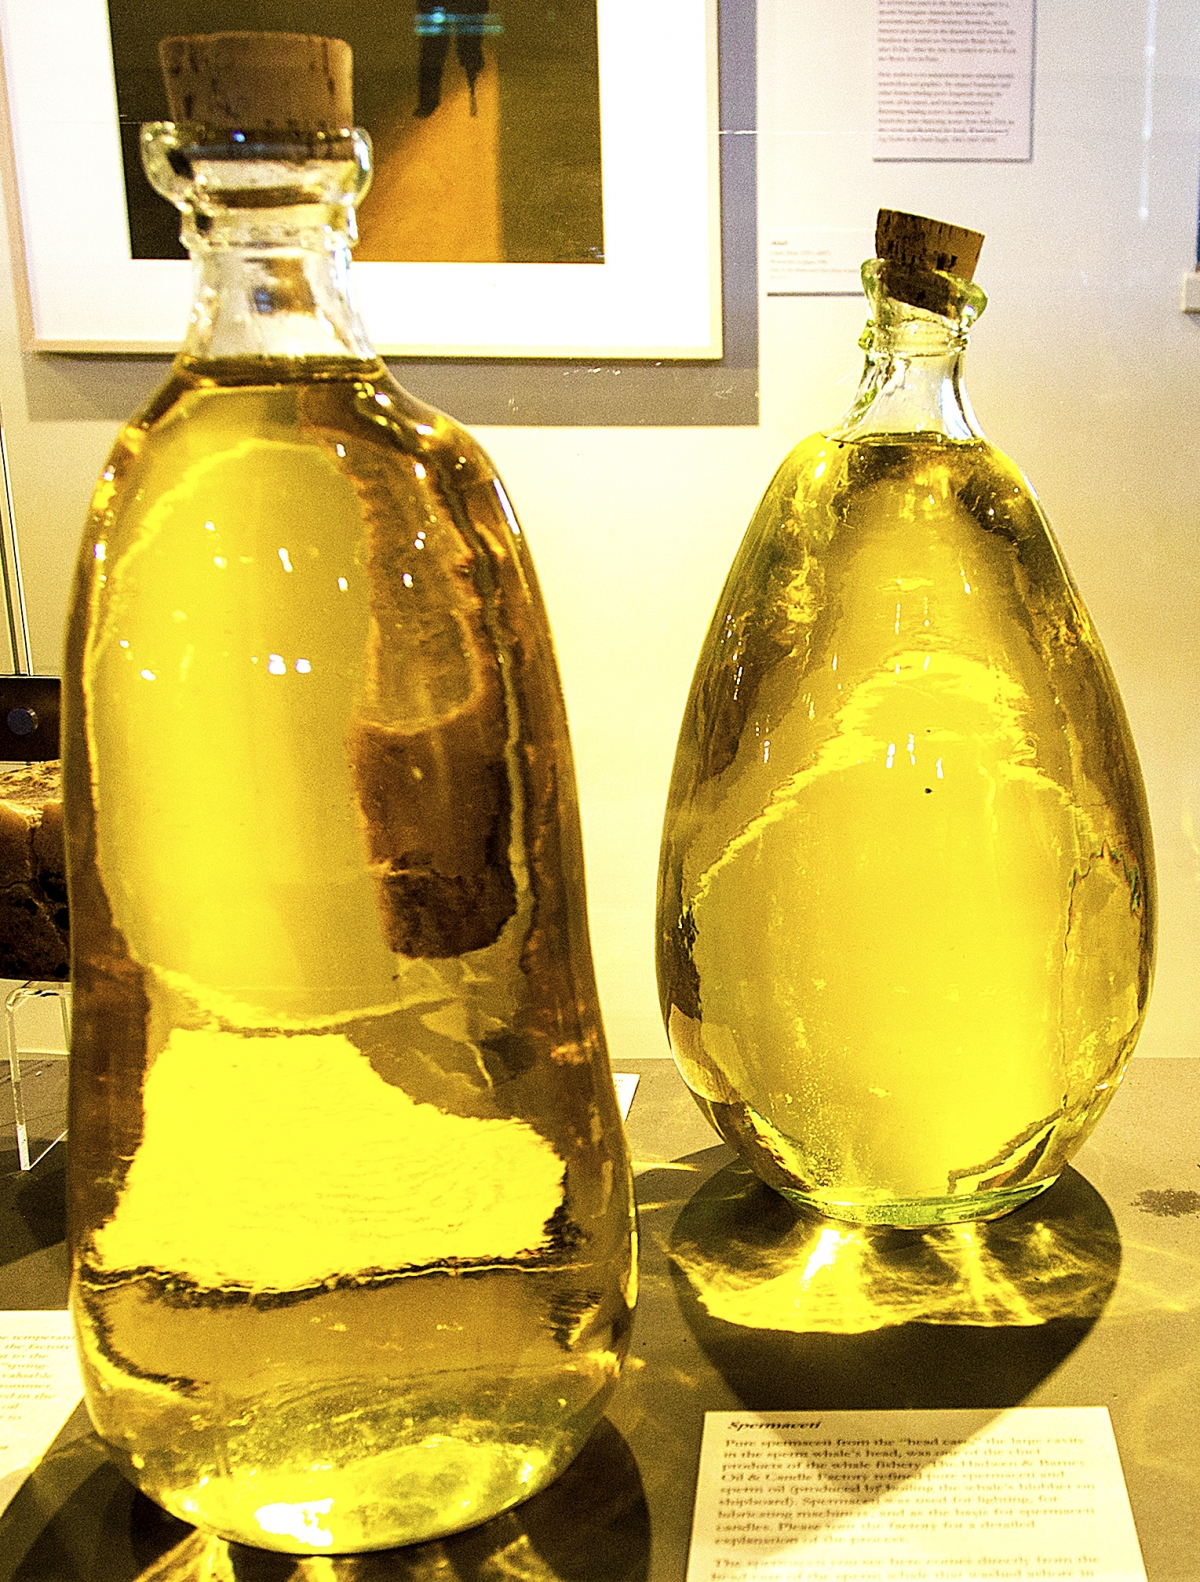 Sperm whale oil flasks from a beached sperm whale in 1998, Nantucket whaling museum